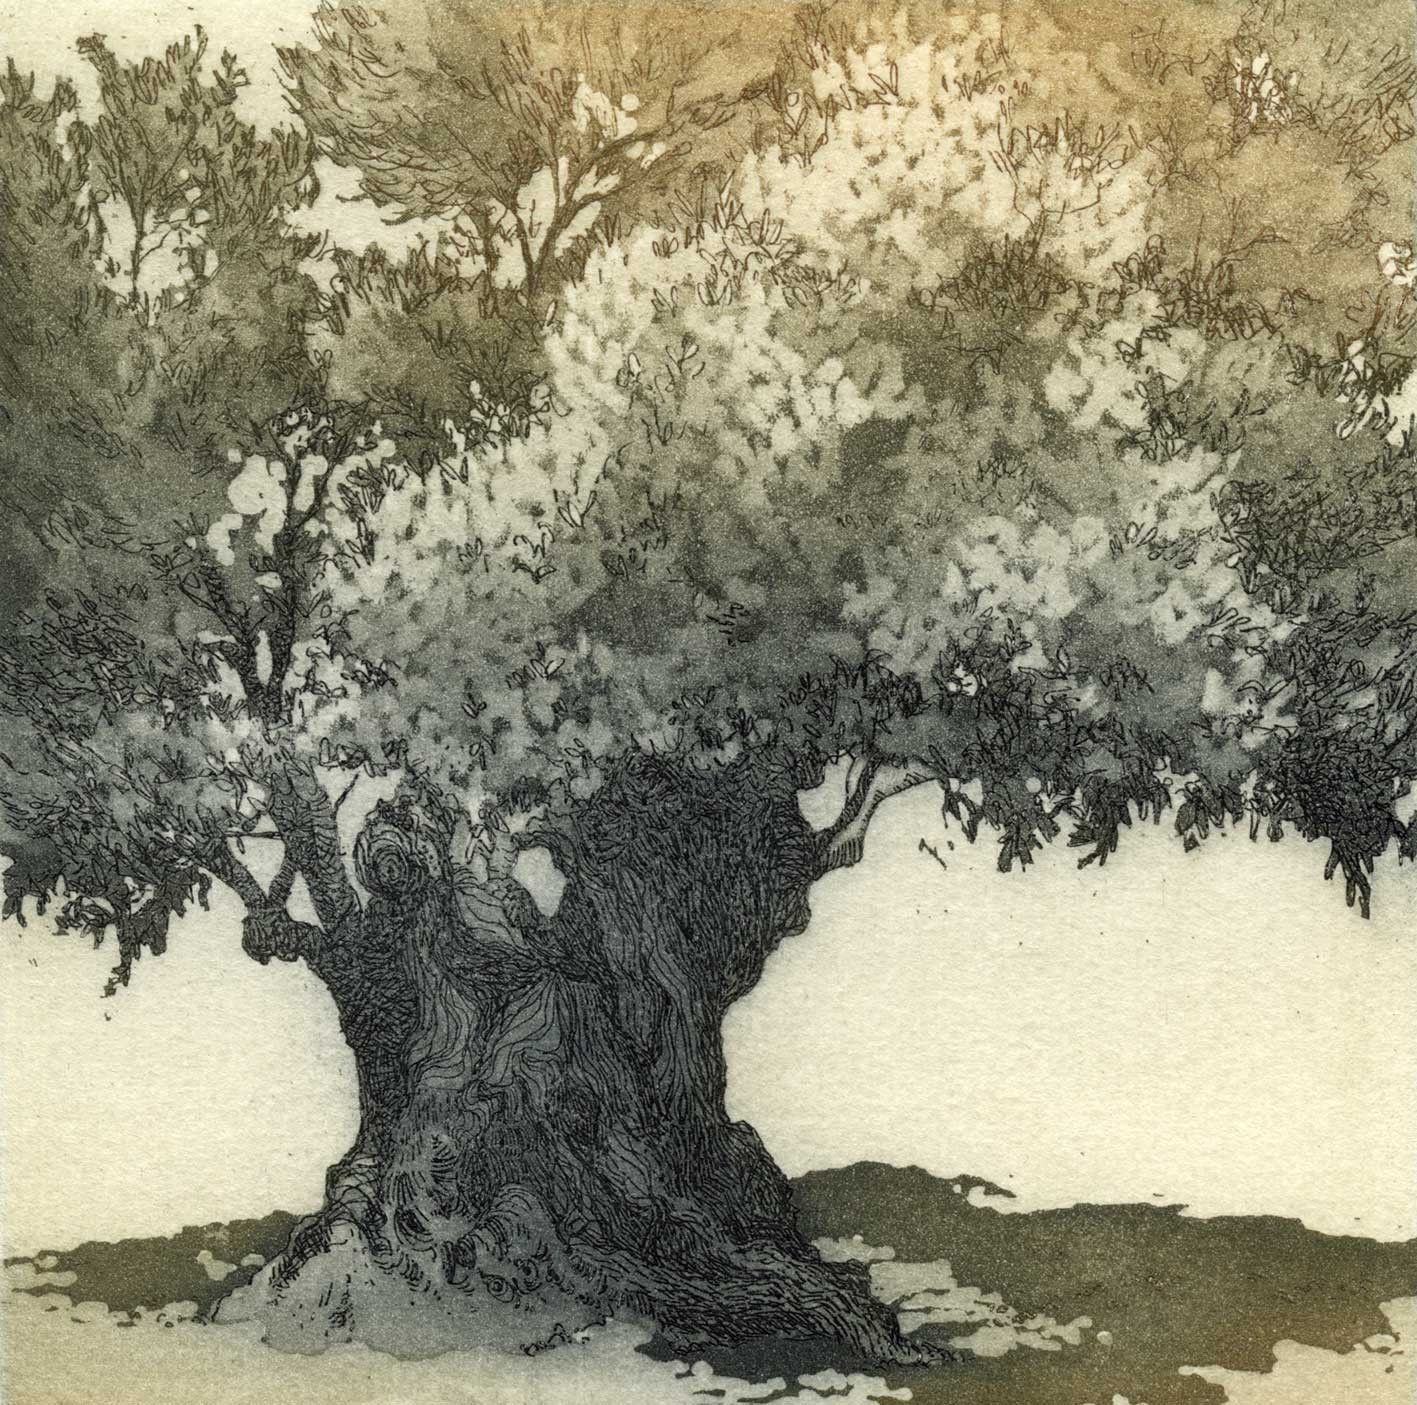 Tree Etching Stock Photos, Royalty-Free Images & Vectors ...